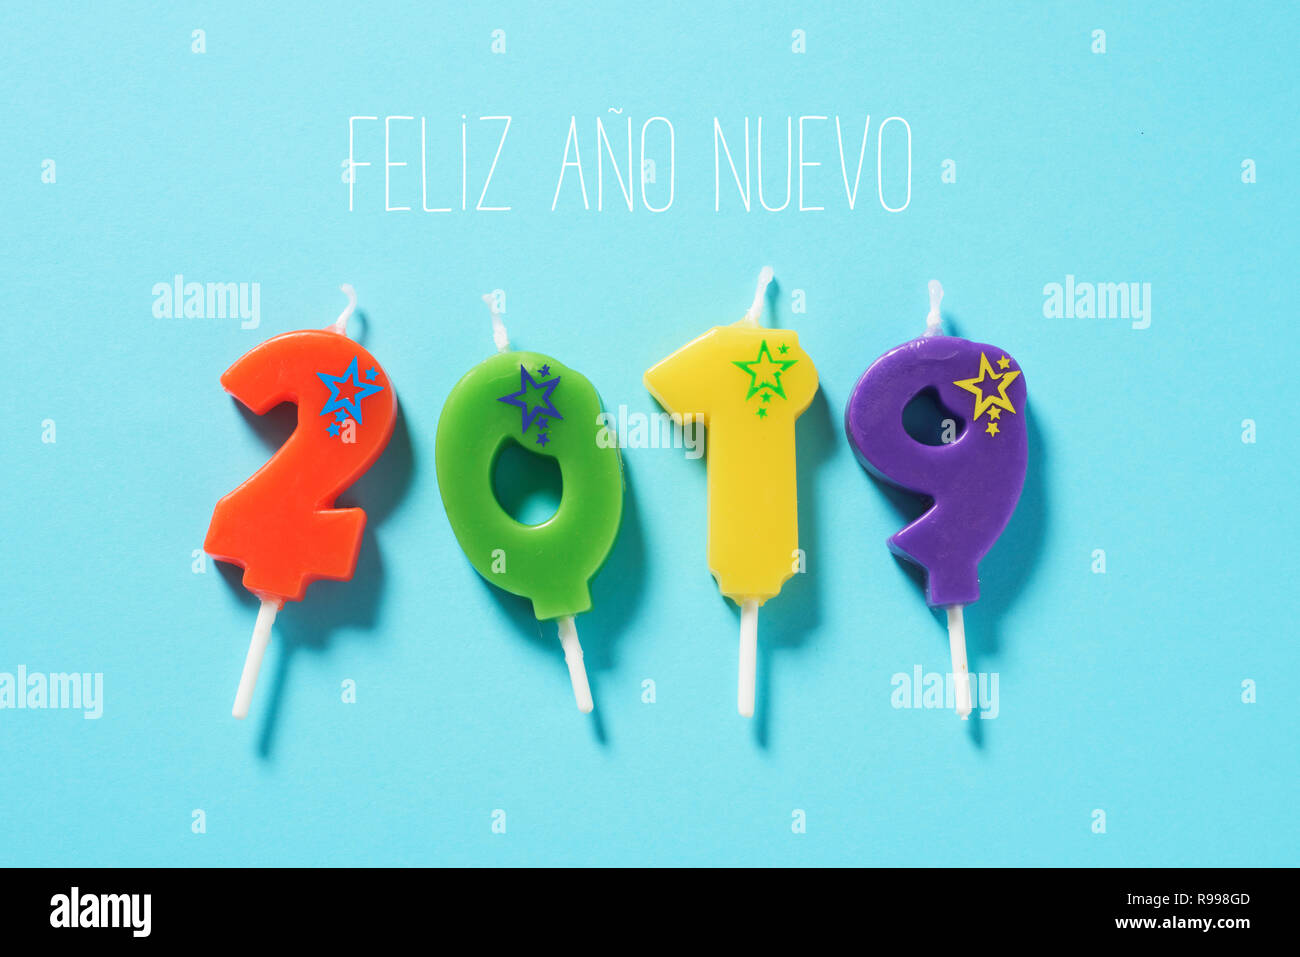 high angle view of some number-shaped candles of different colors forming the number 2019, and the text feliz ano nuevo, happy new year written in spa - Stock Image